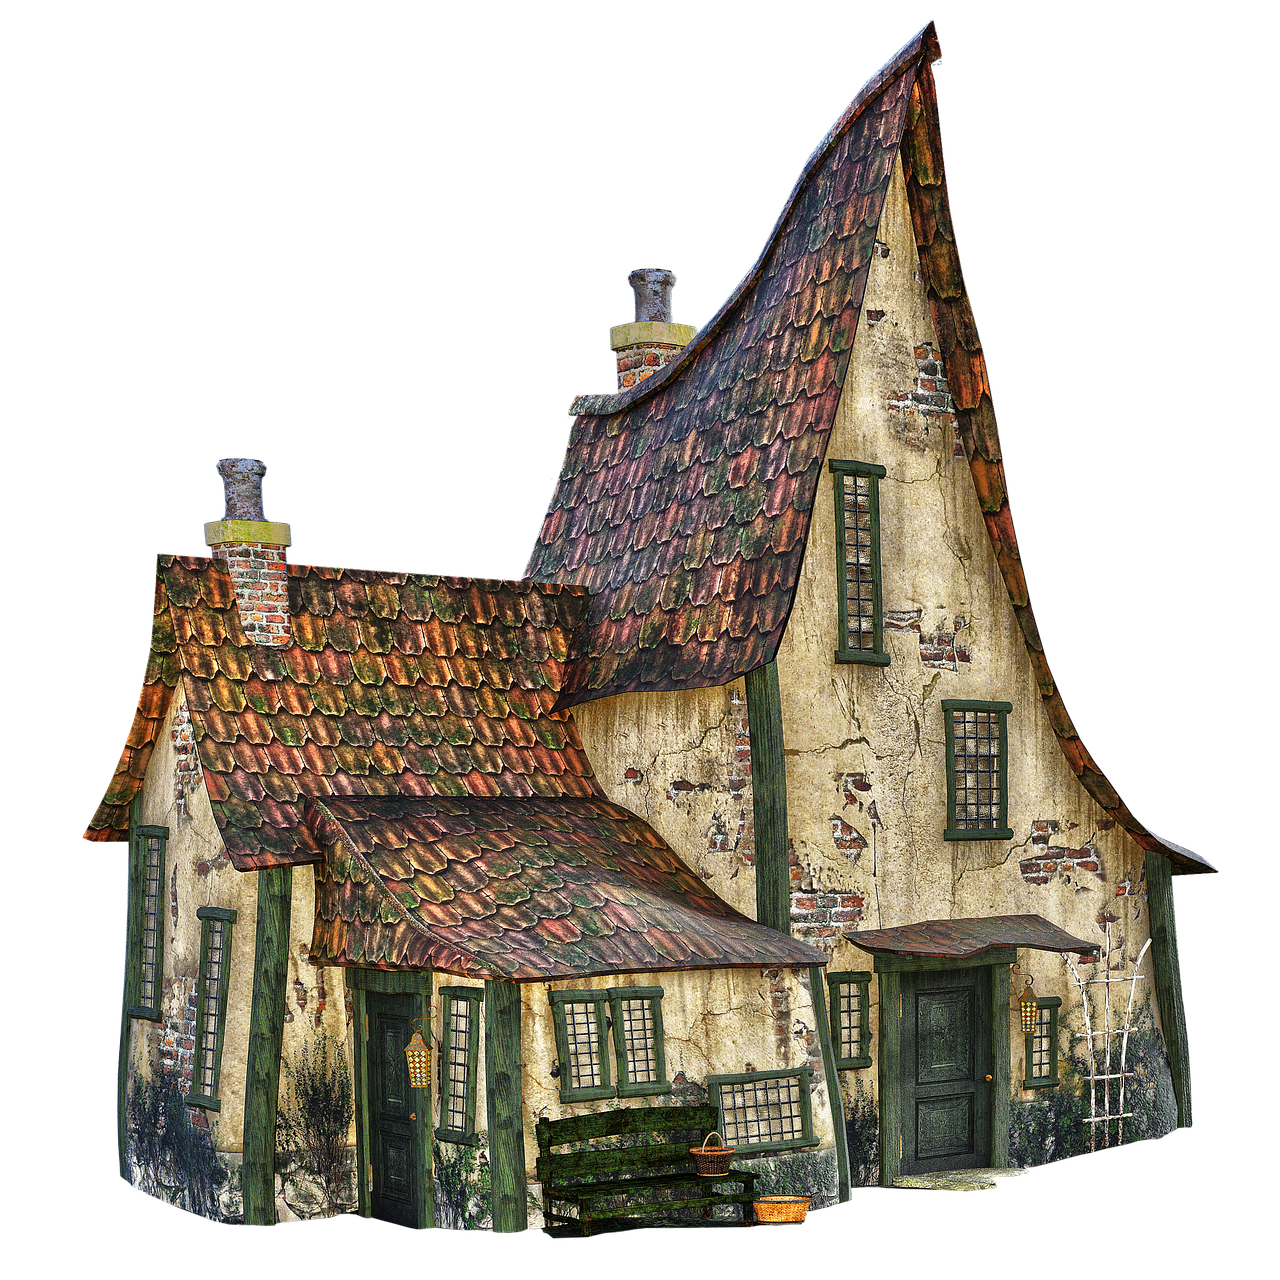 Old House Witch'S Halloween - Free image on Pixabay